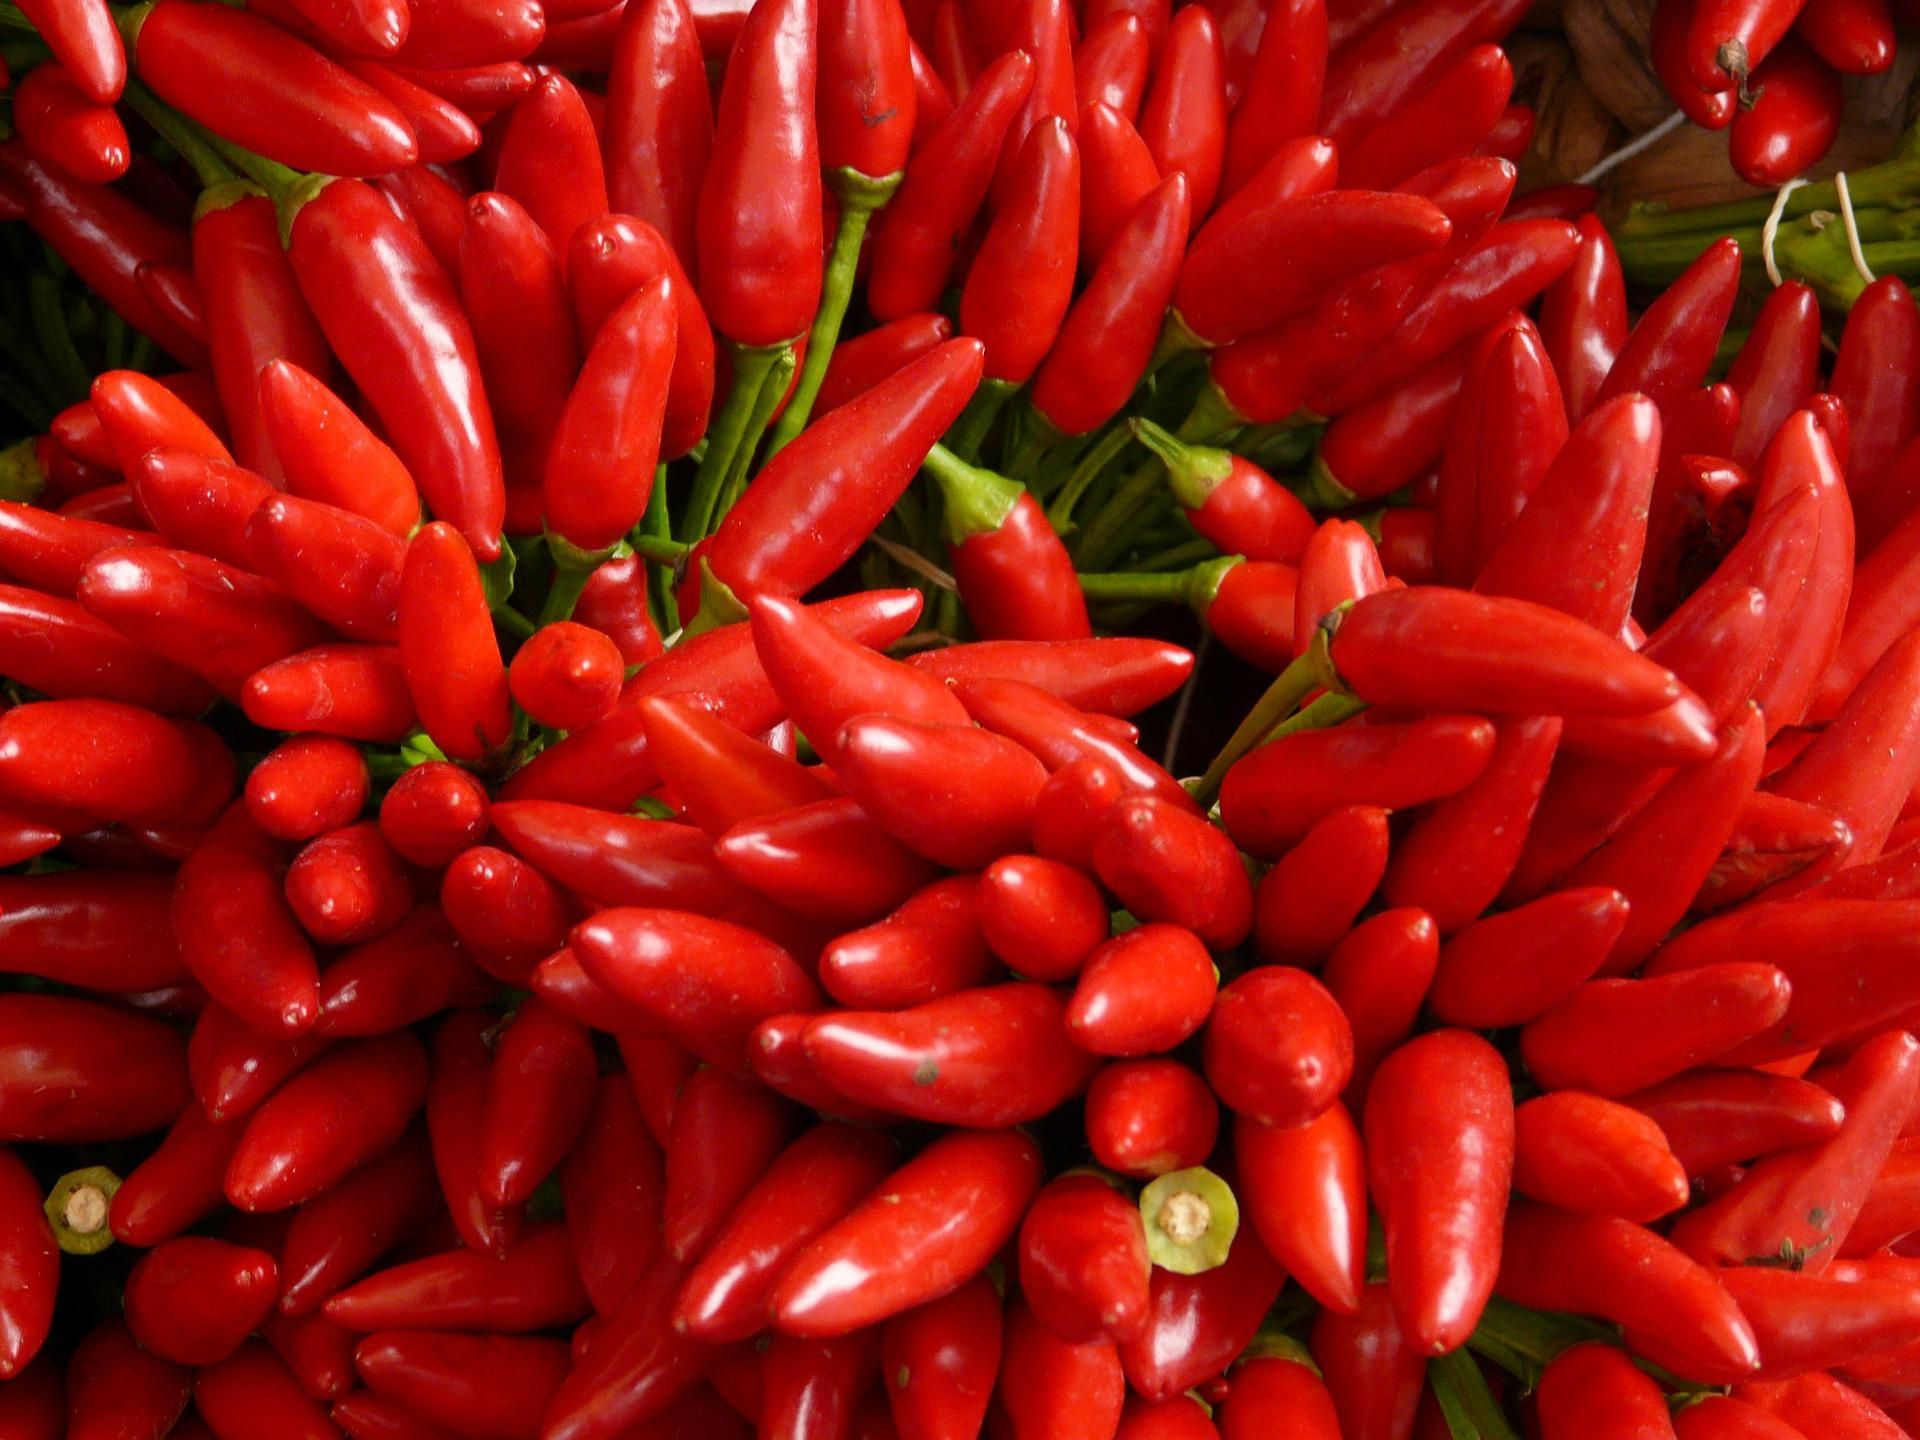 bigthink.com - Stephen Johnson - Capsaicin, the chemical in spicy peppers, used to boost solar cell performance